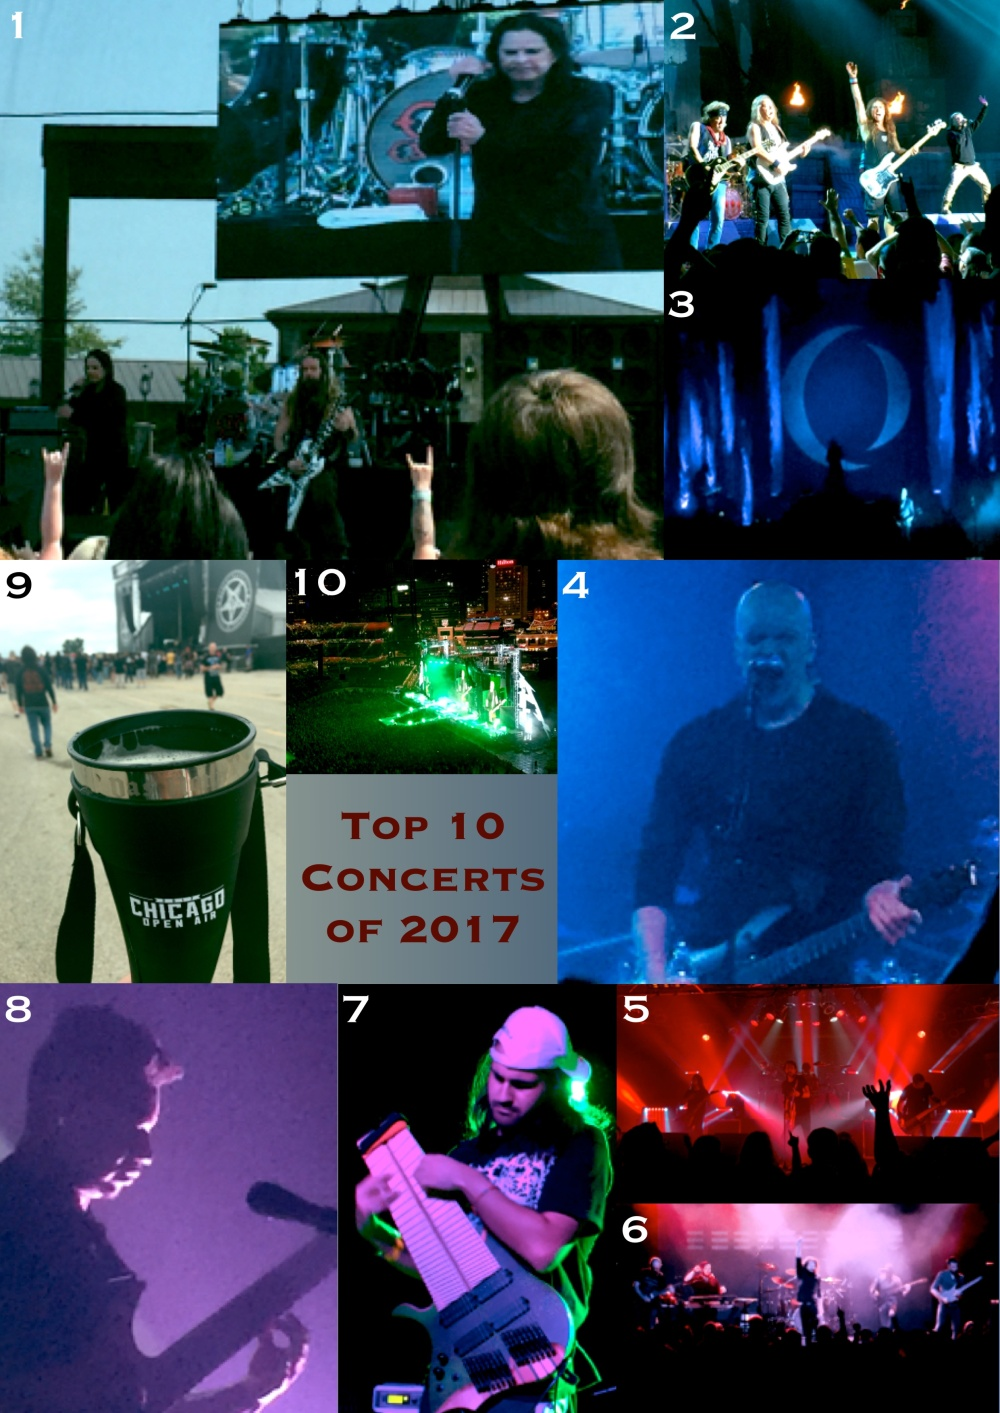 Top 10 Concerts of 2017